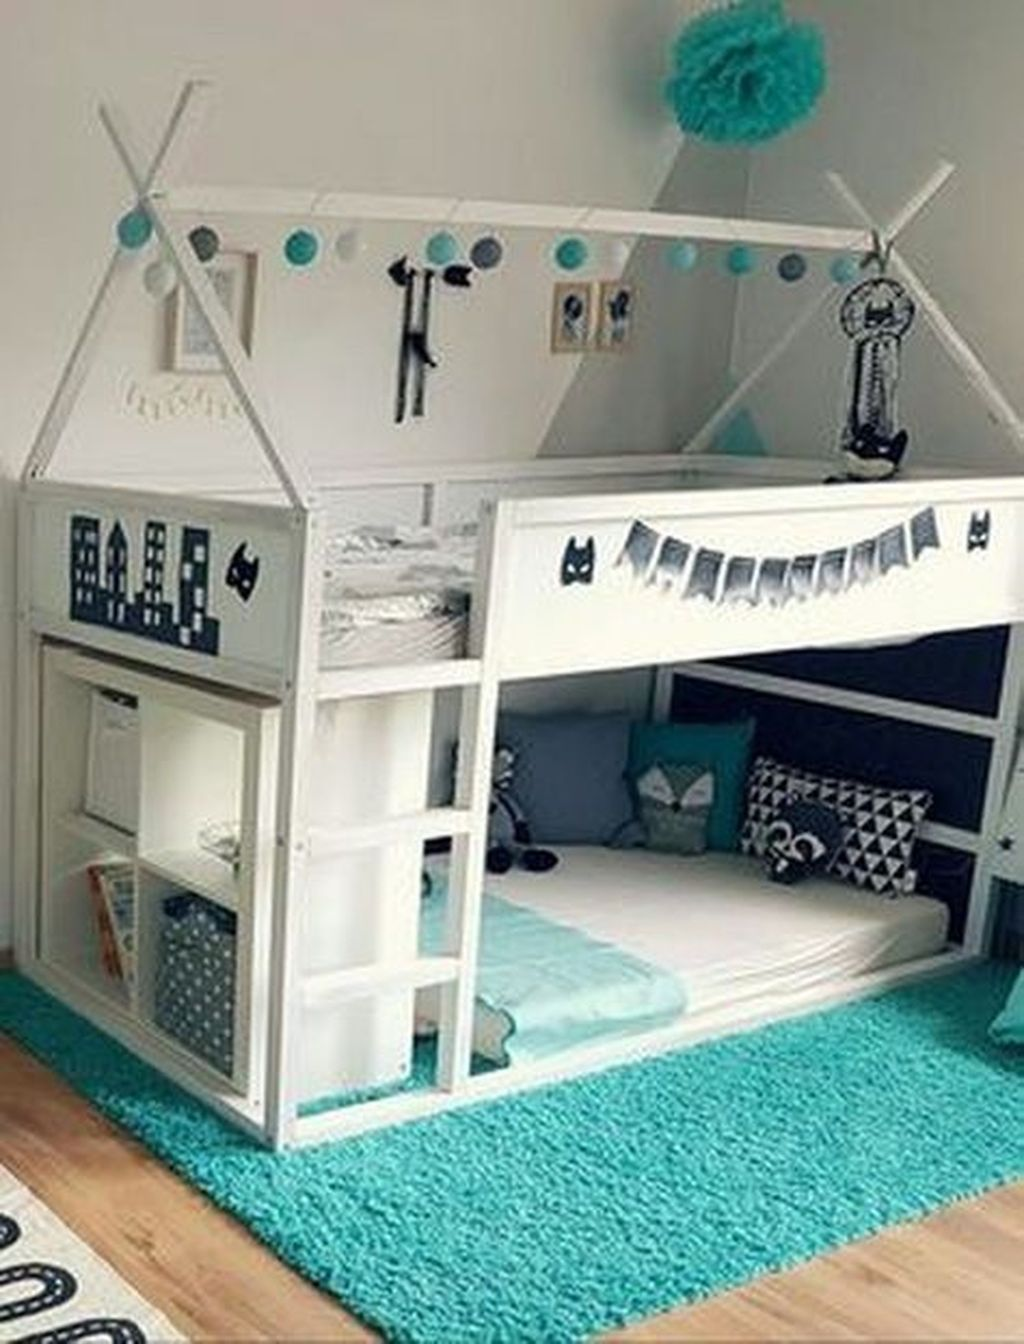 51 cool ikea kura beds ideas for your kids rooms | bedroom